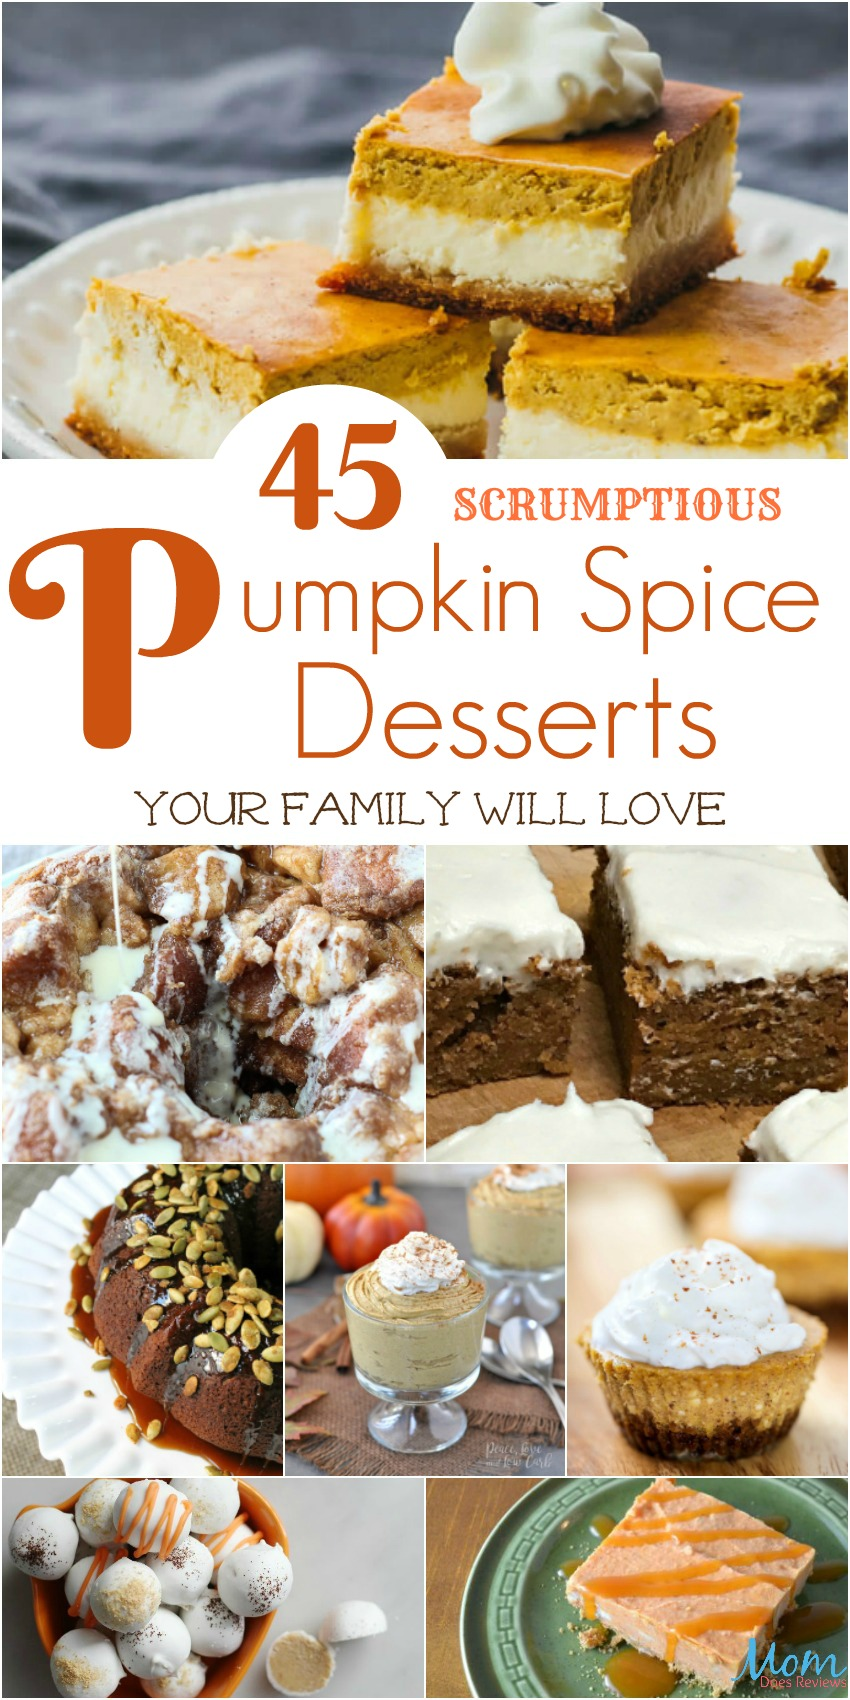 45 Scrumptious Pumpkin Spice Desserts Your Family Will Love banner